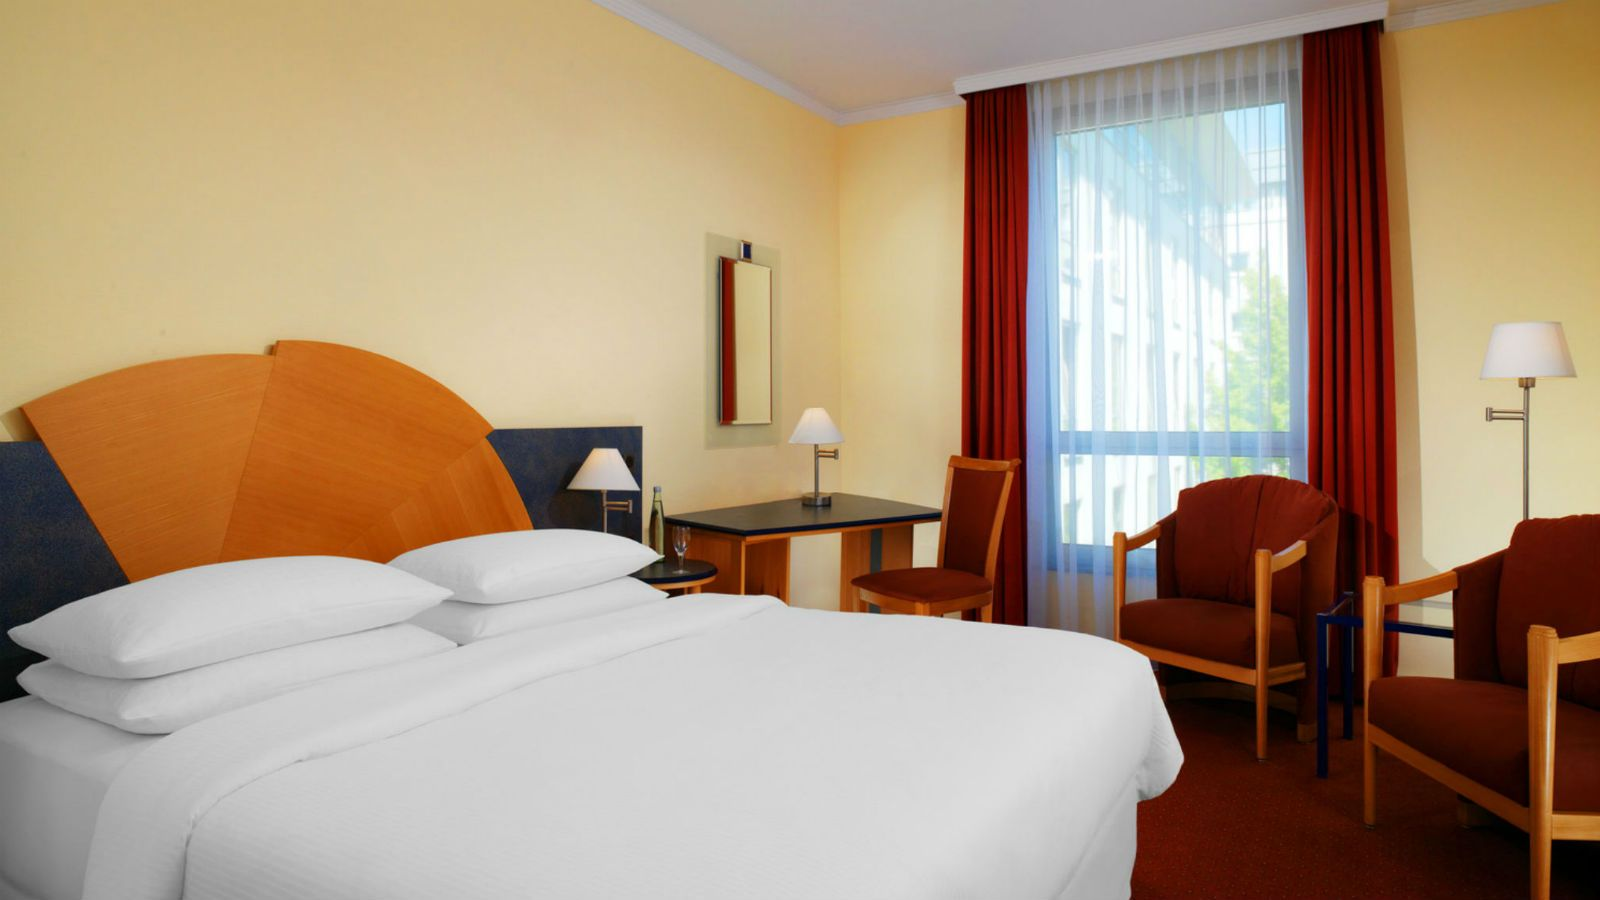 Hotel Offenbach - Classic Room at the Sheraton Hotel